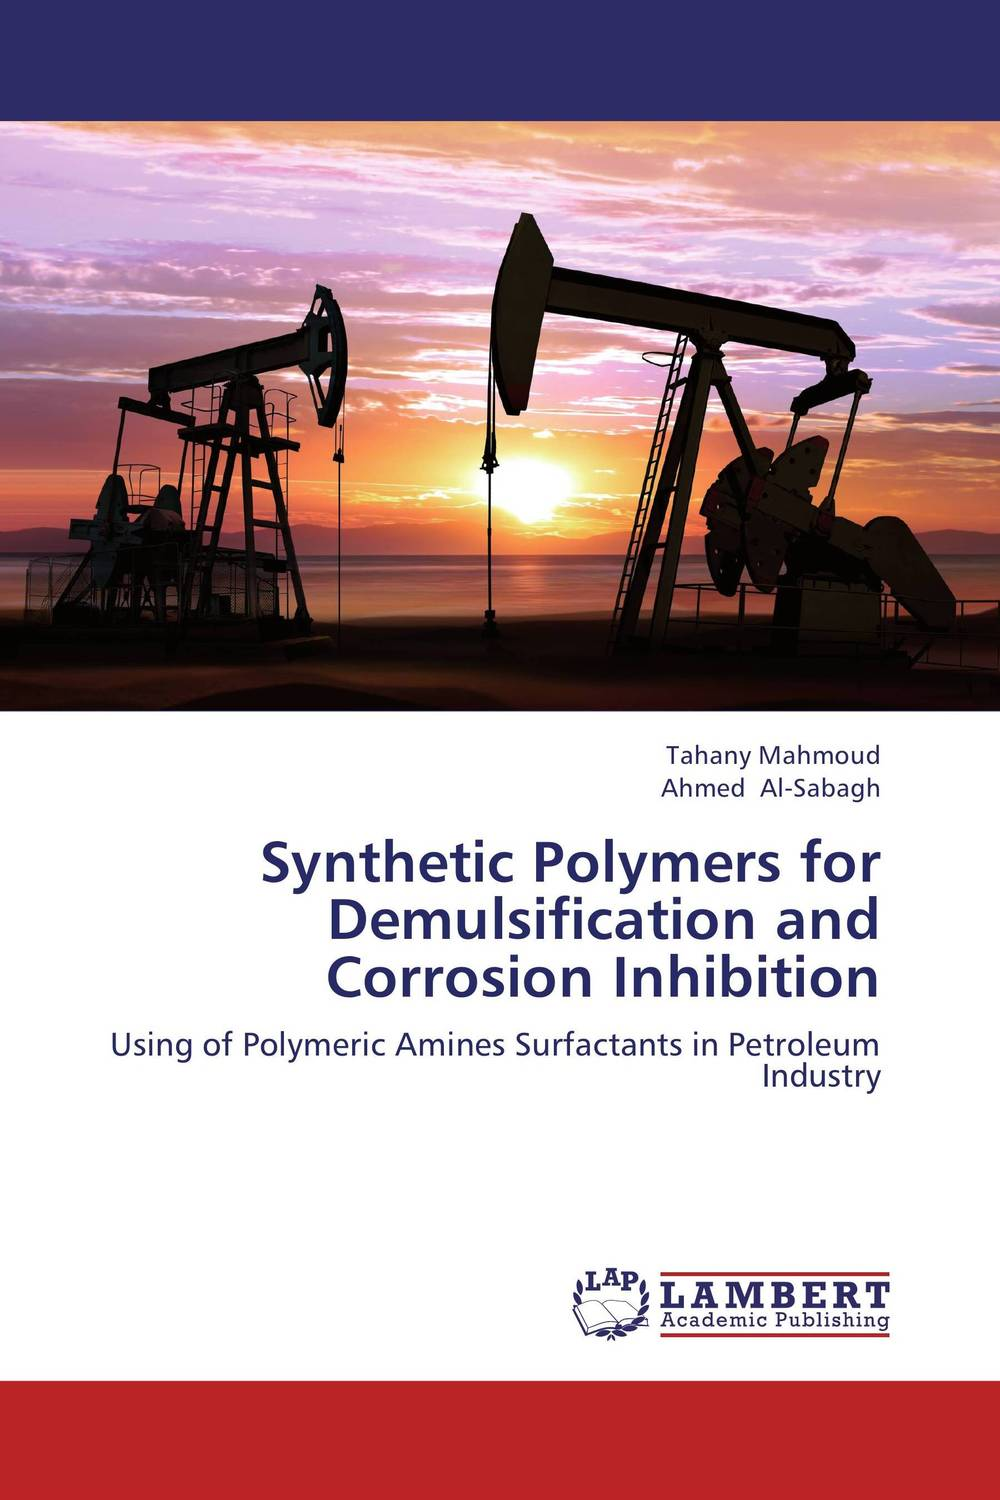 Synthetic Polymers for Demulsification and Corrosion Inhibition dearomatization of crude oil